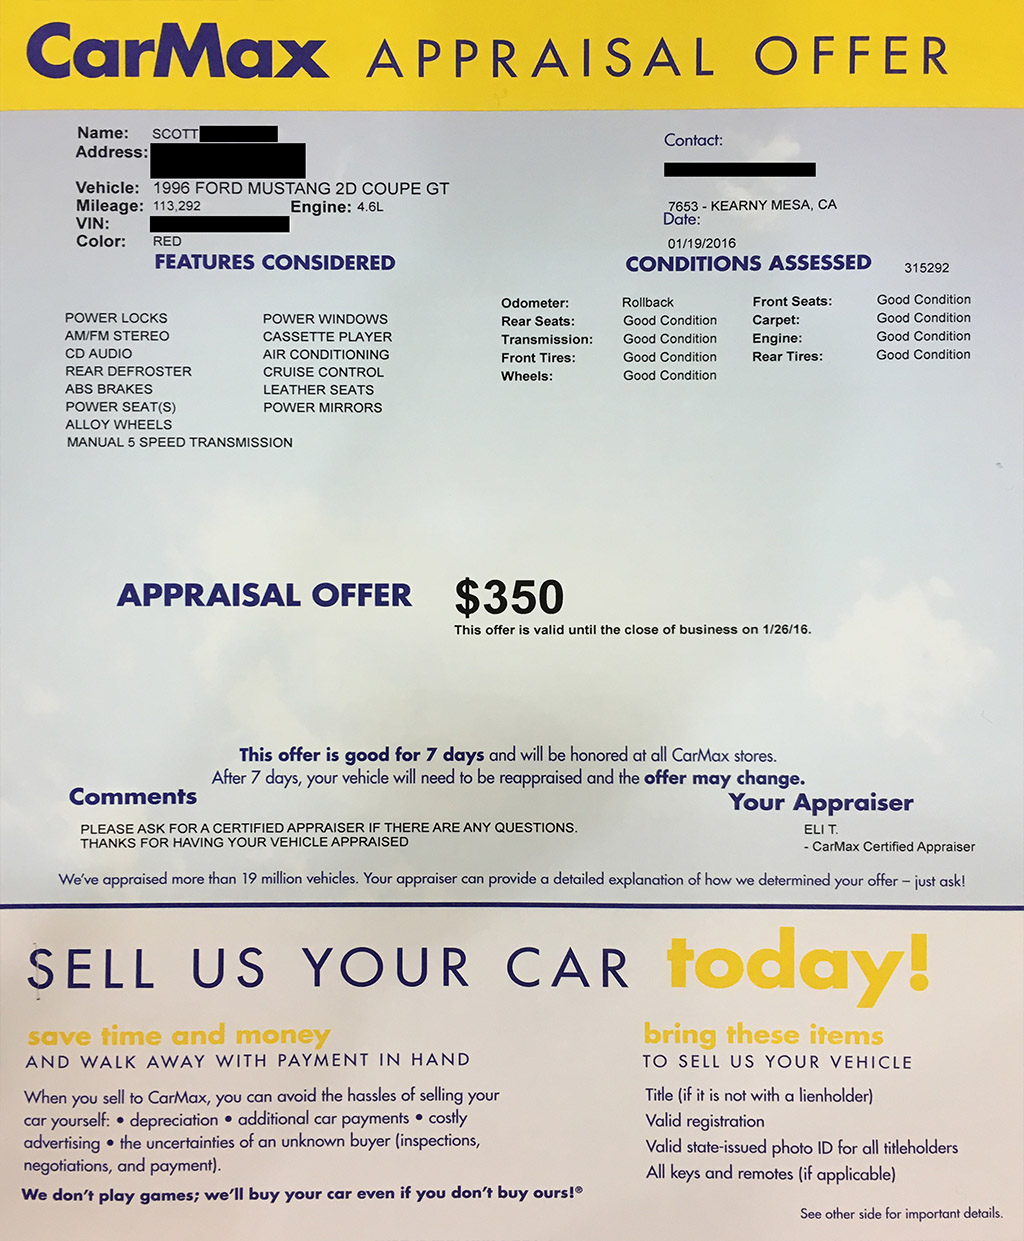 CarMax appraisal offer